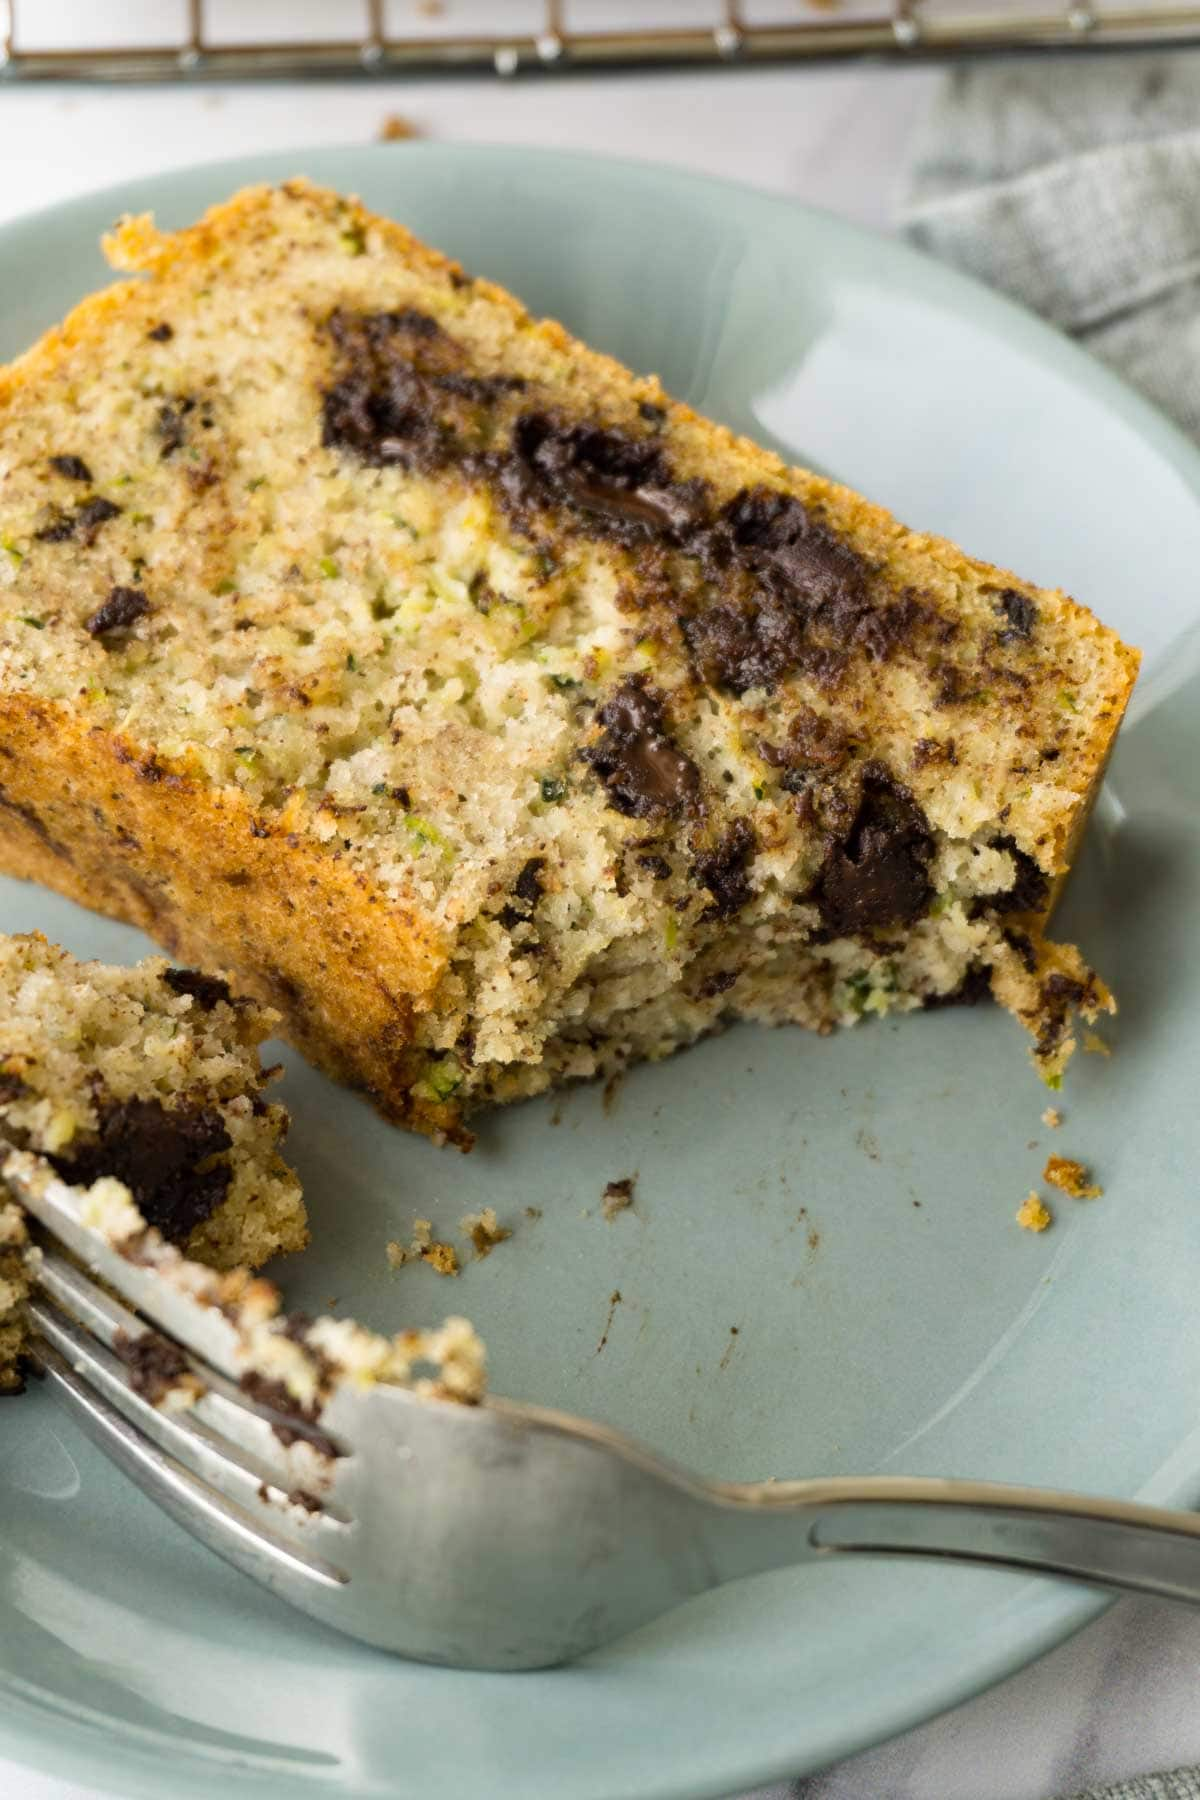 A slice of chocolate chip bread with zucchini on a small blue round plate, one piece taken with a silver fork.